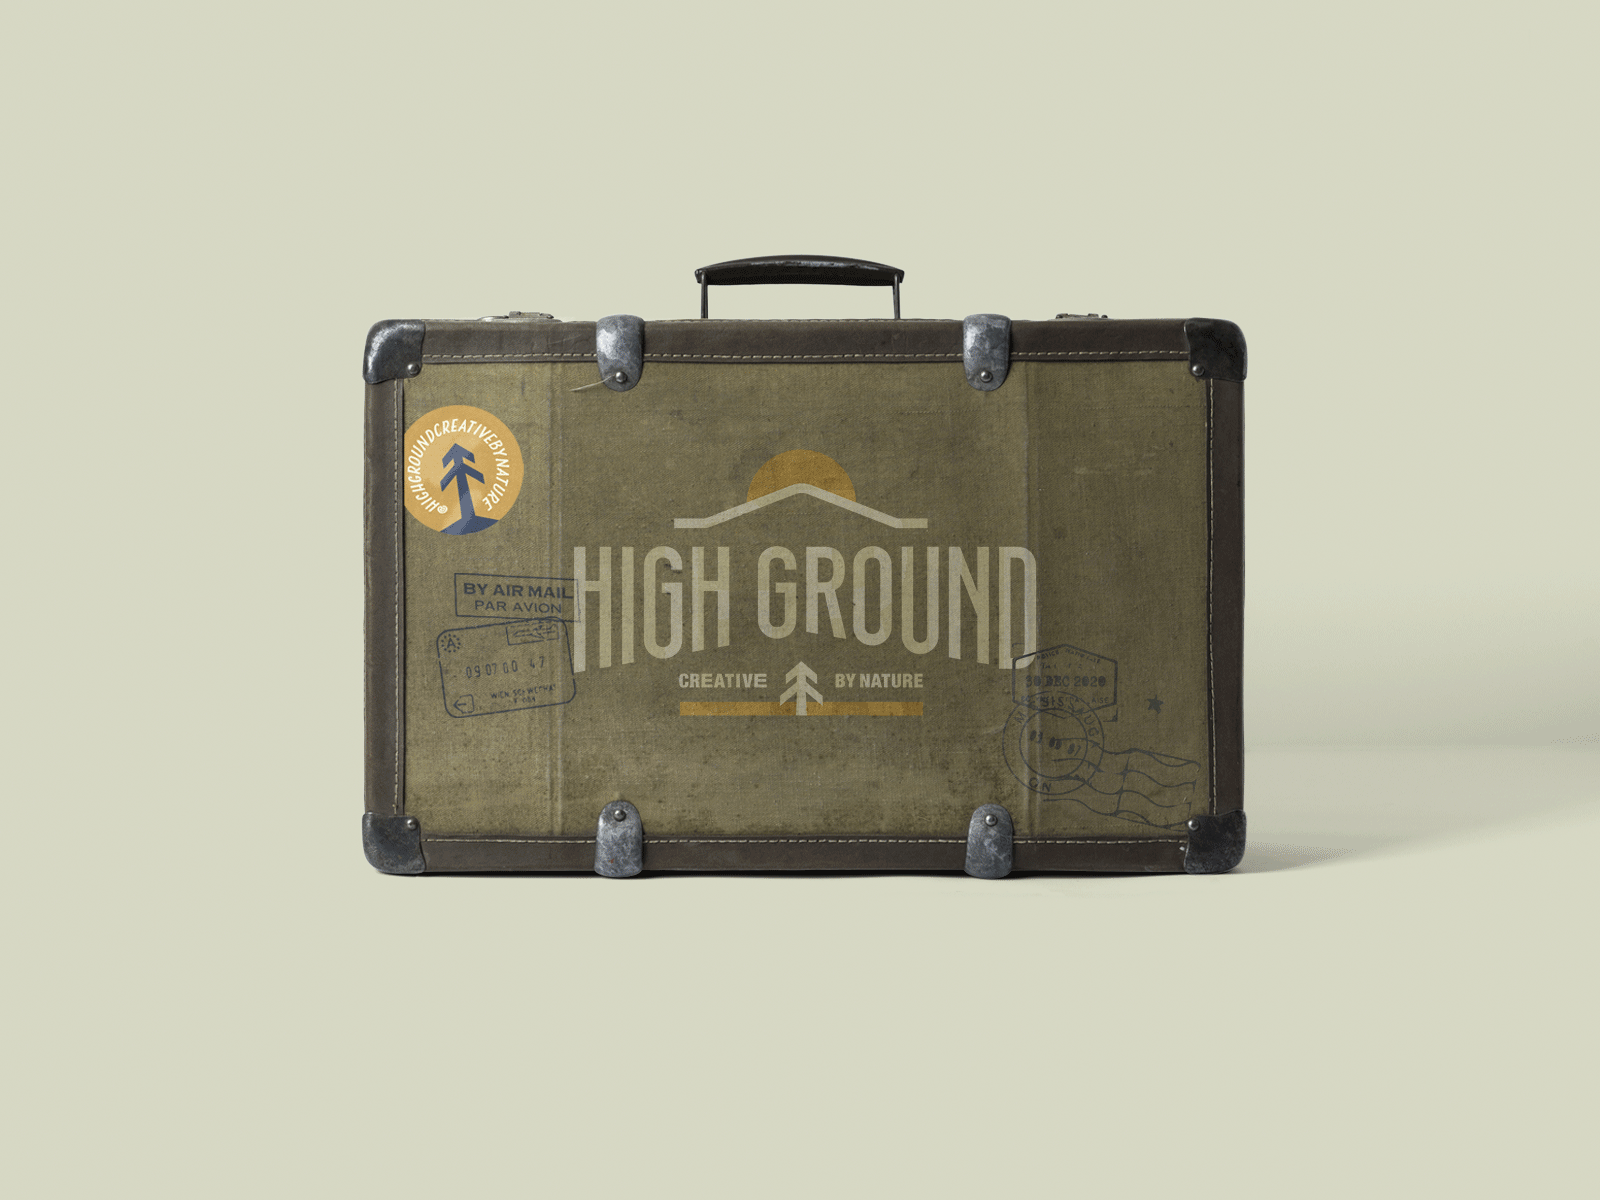 Branded Suitcase for High Ground Brand Identity Design Project